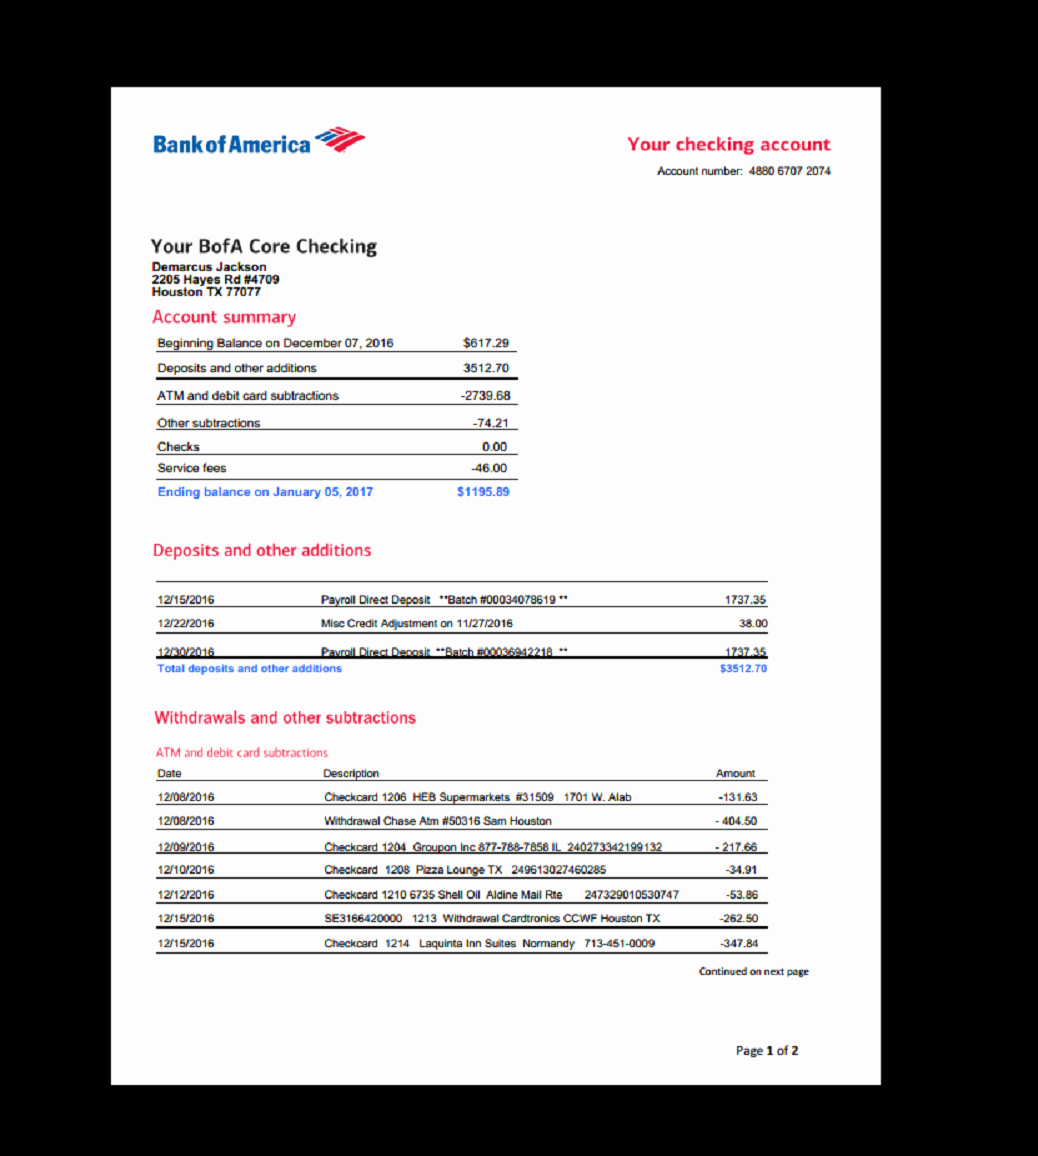 Free Bank Statement Template Luxury Bank Statement Bank America In 2019